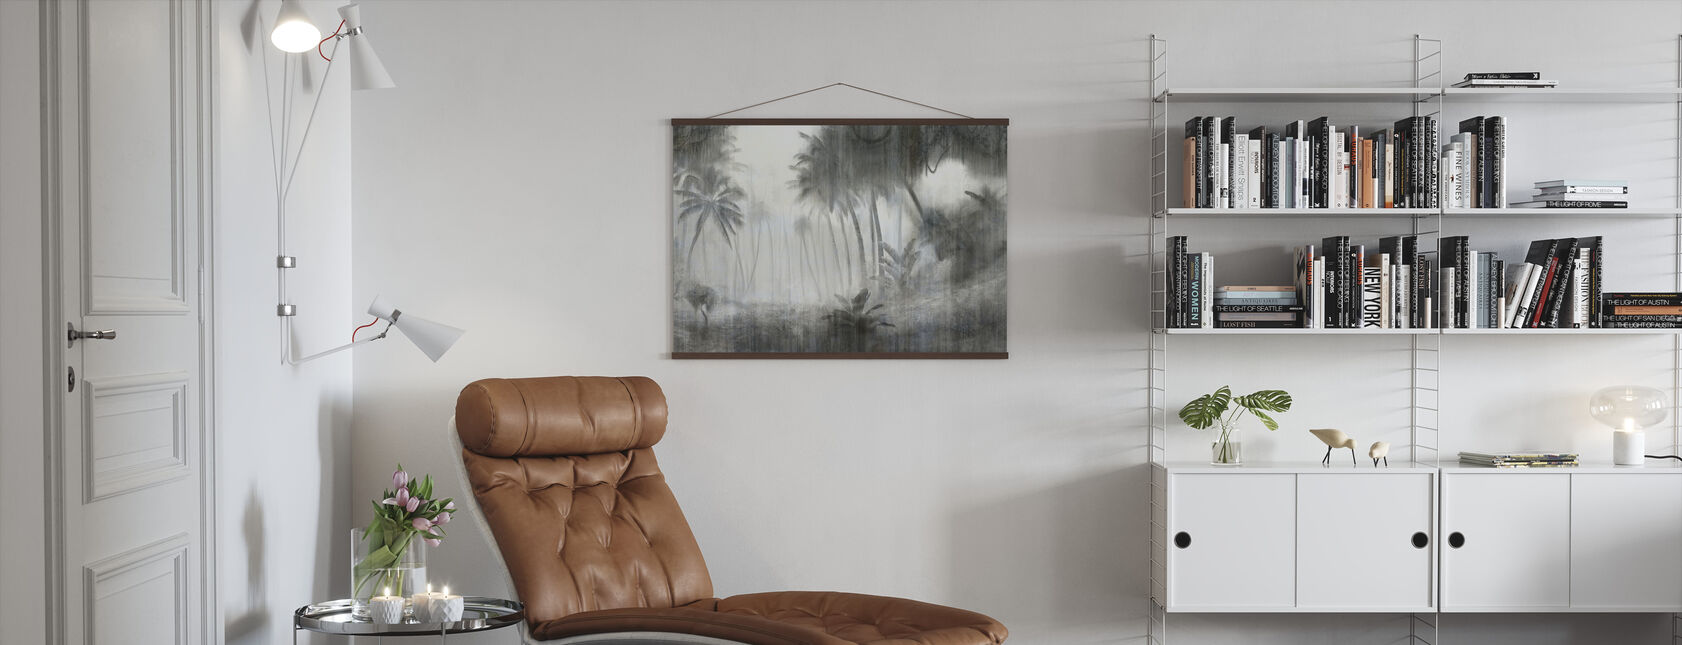 Definitive Tropical - Bright - Poster - Living Room